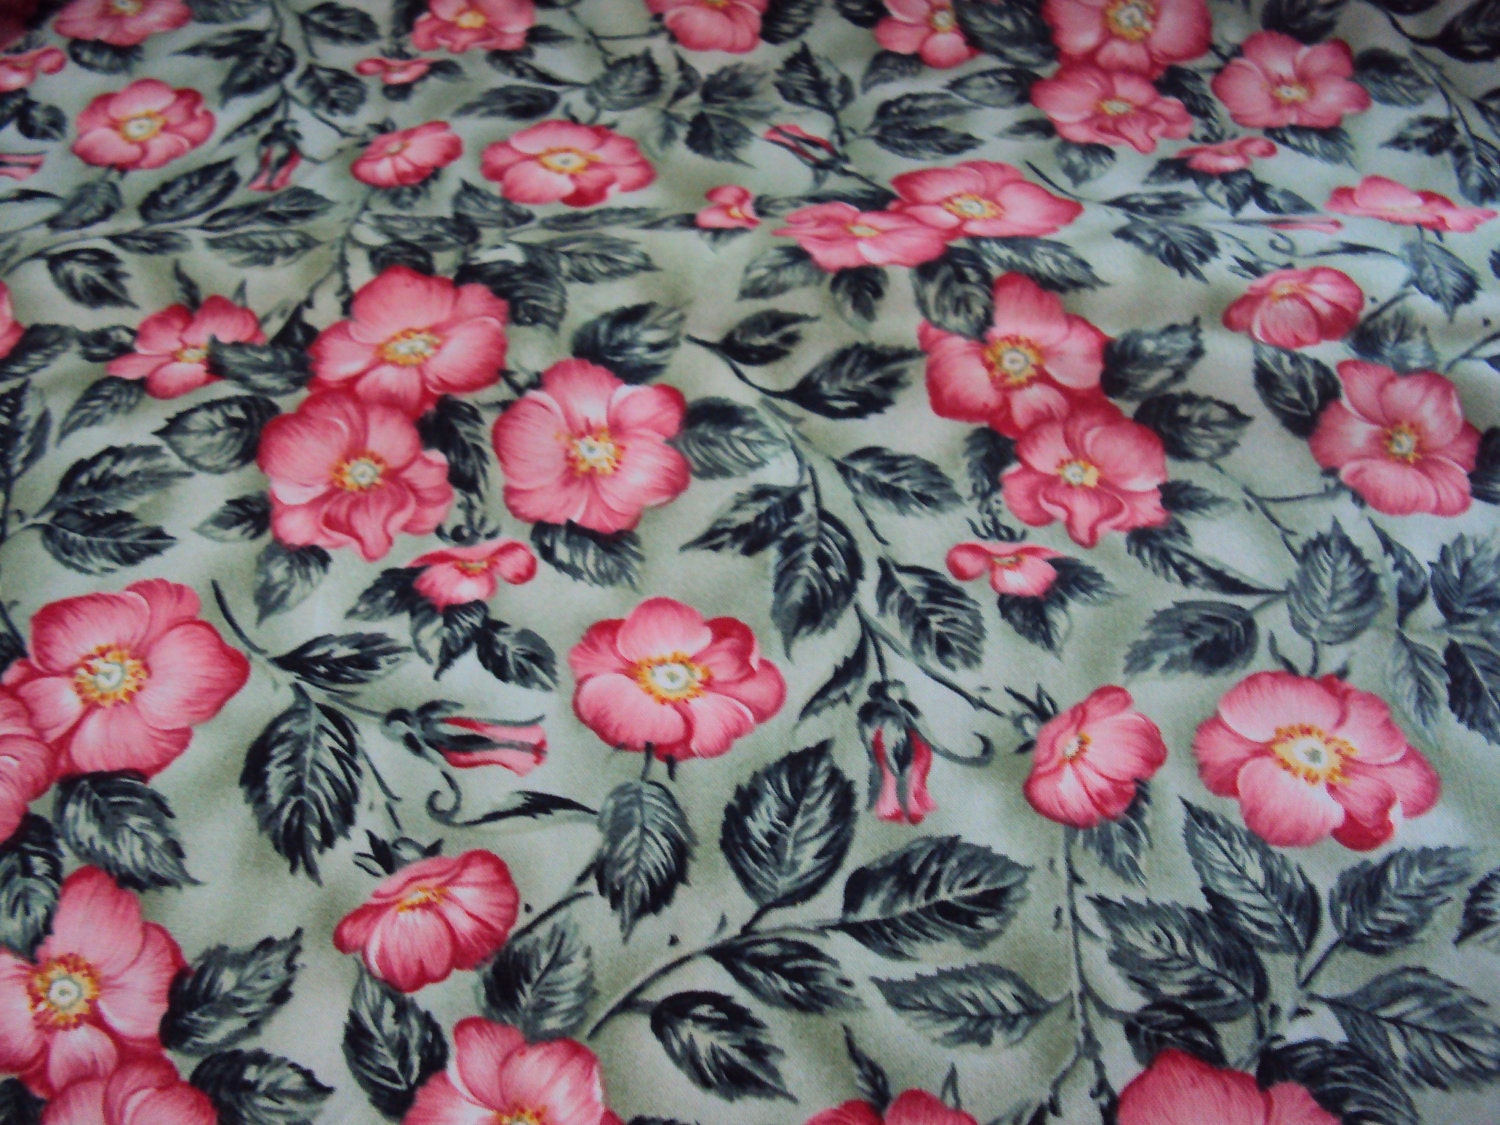 The State Flowers Fabric Northcott 3 1 8 yds